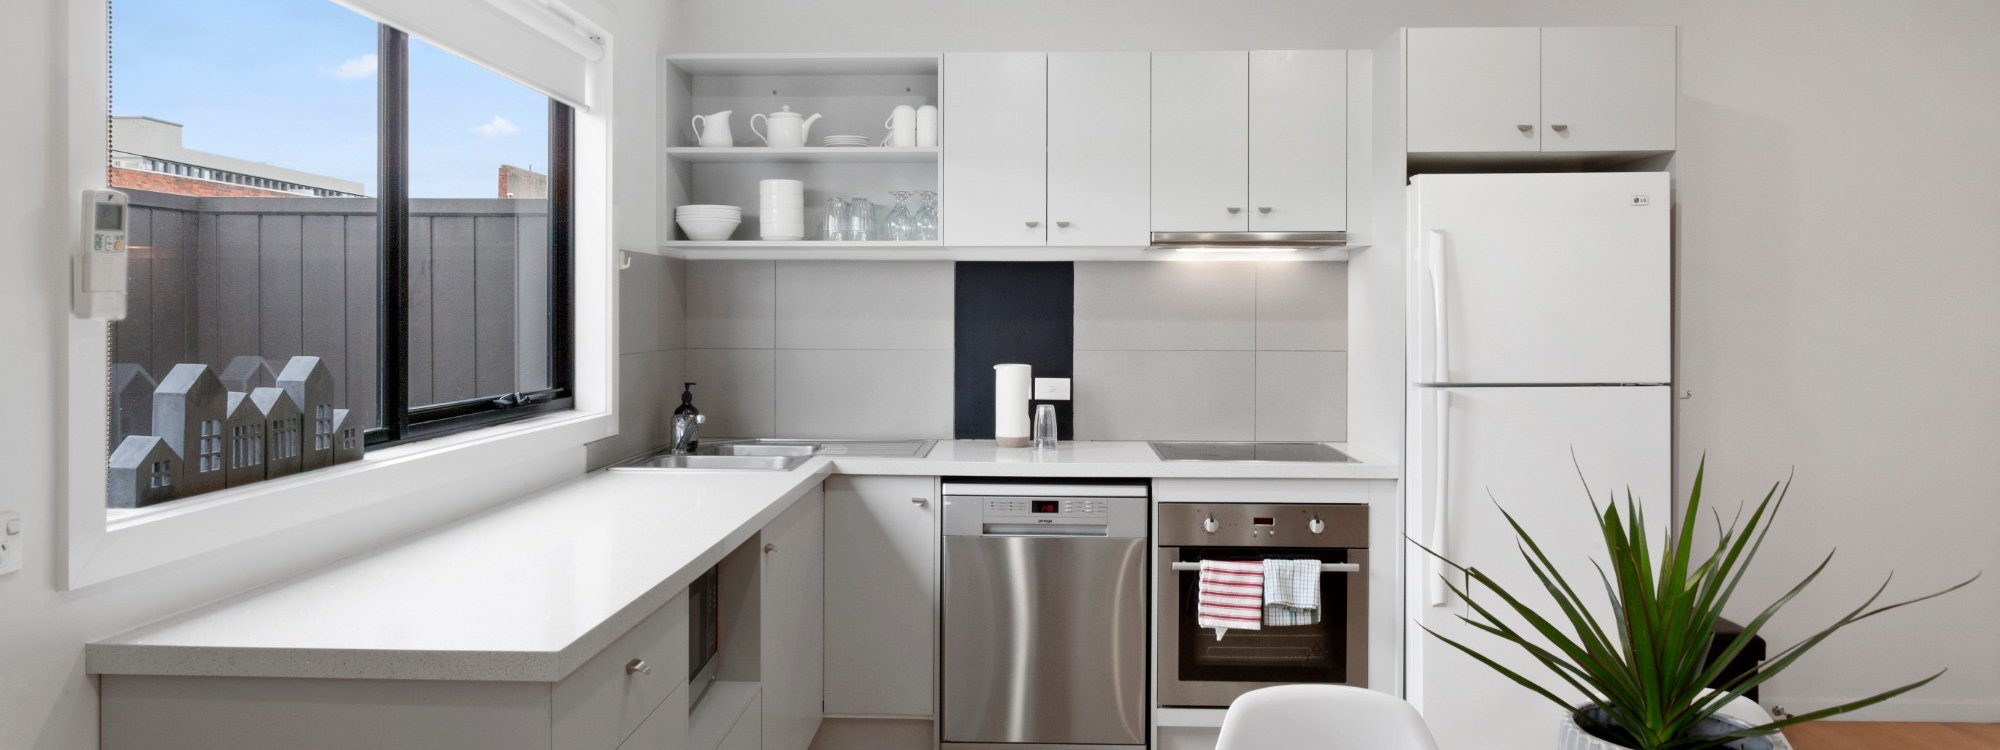 Manallack Apartments Boyd - Melbourne - Kitchen 2